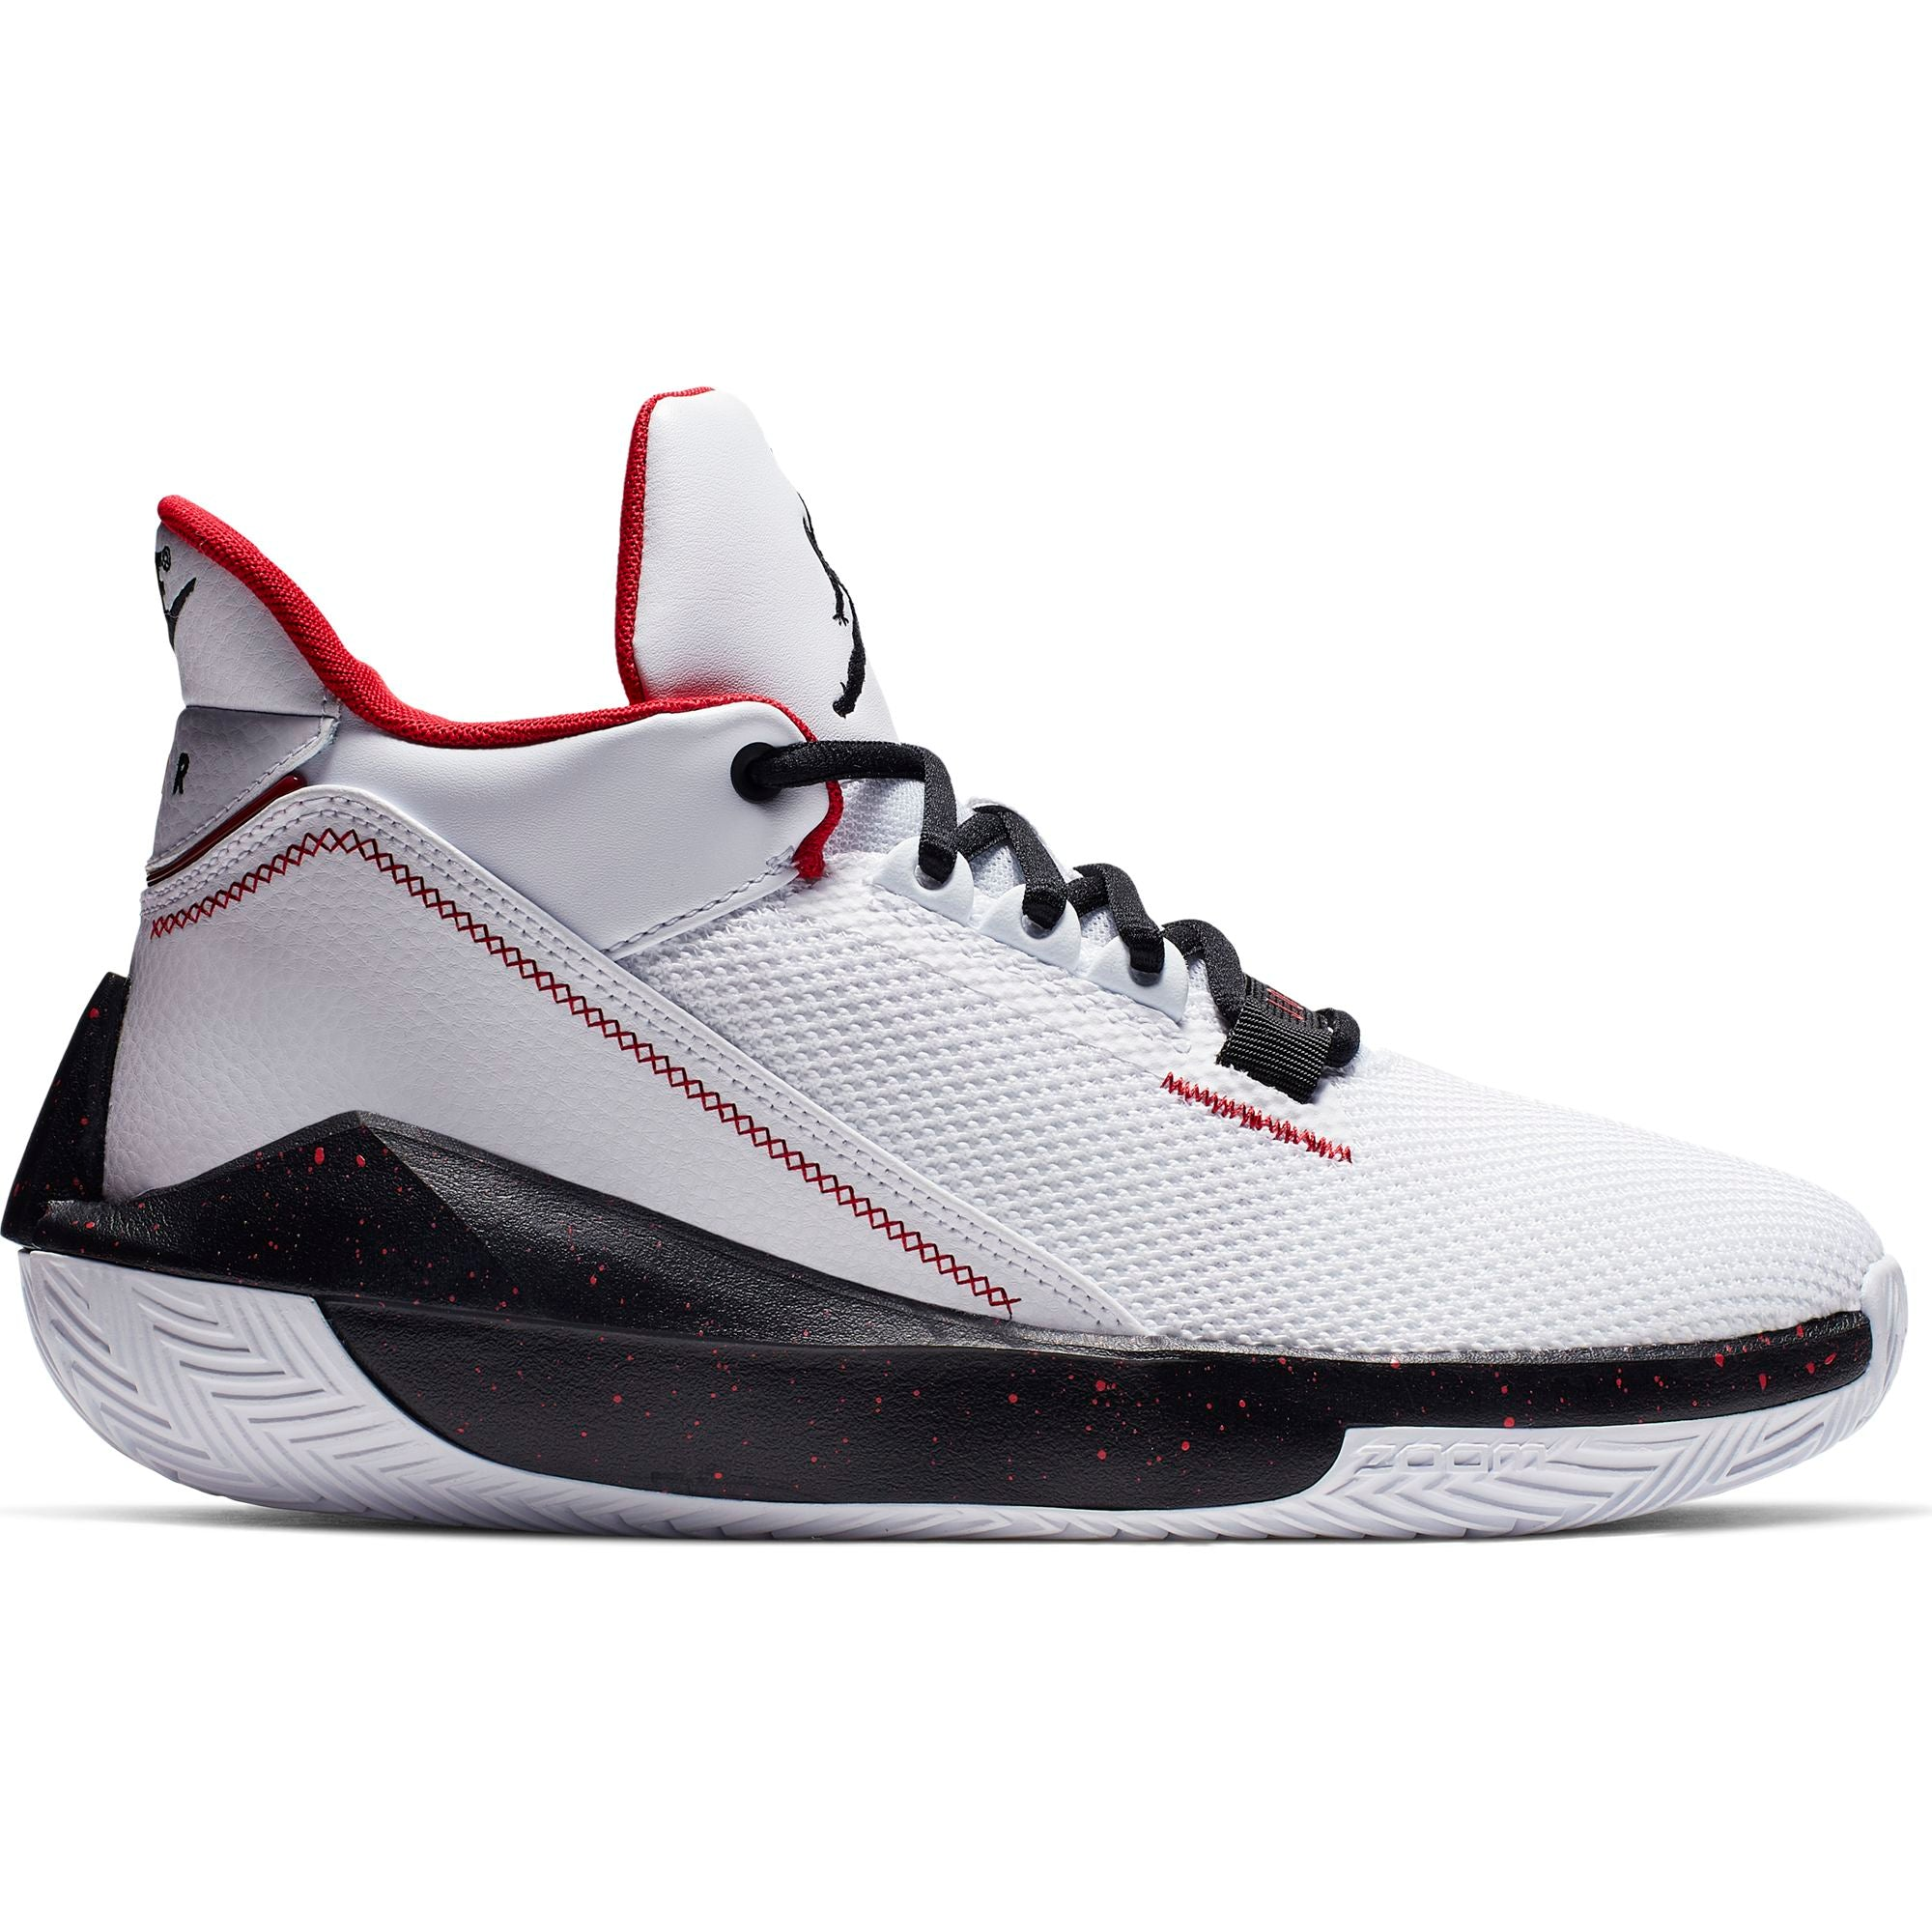 Nike Jordan 2x3 Basketball Boot/Shoe - White/Black/Gym Red